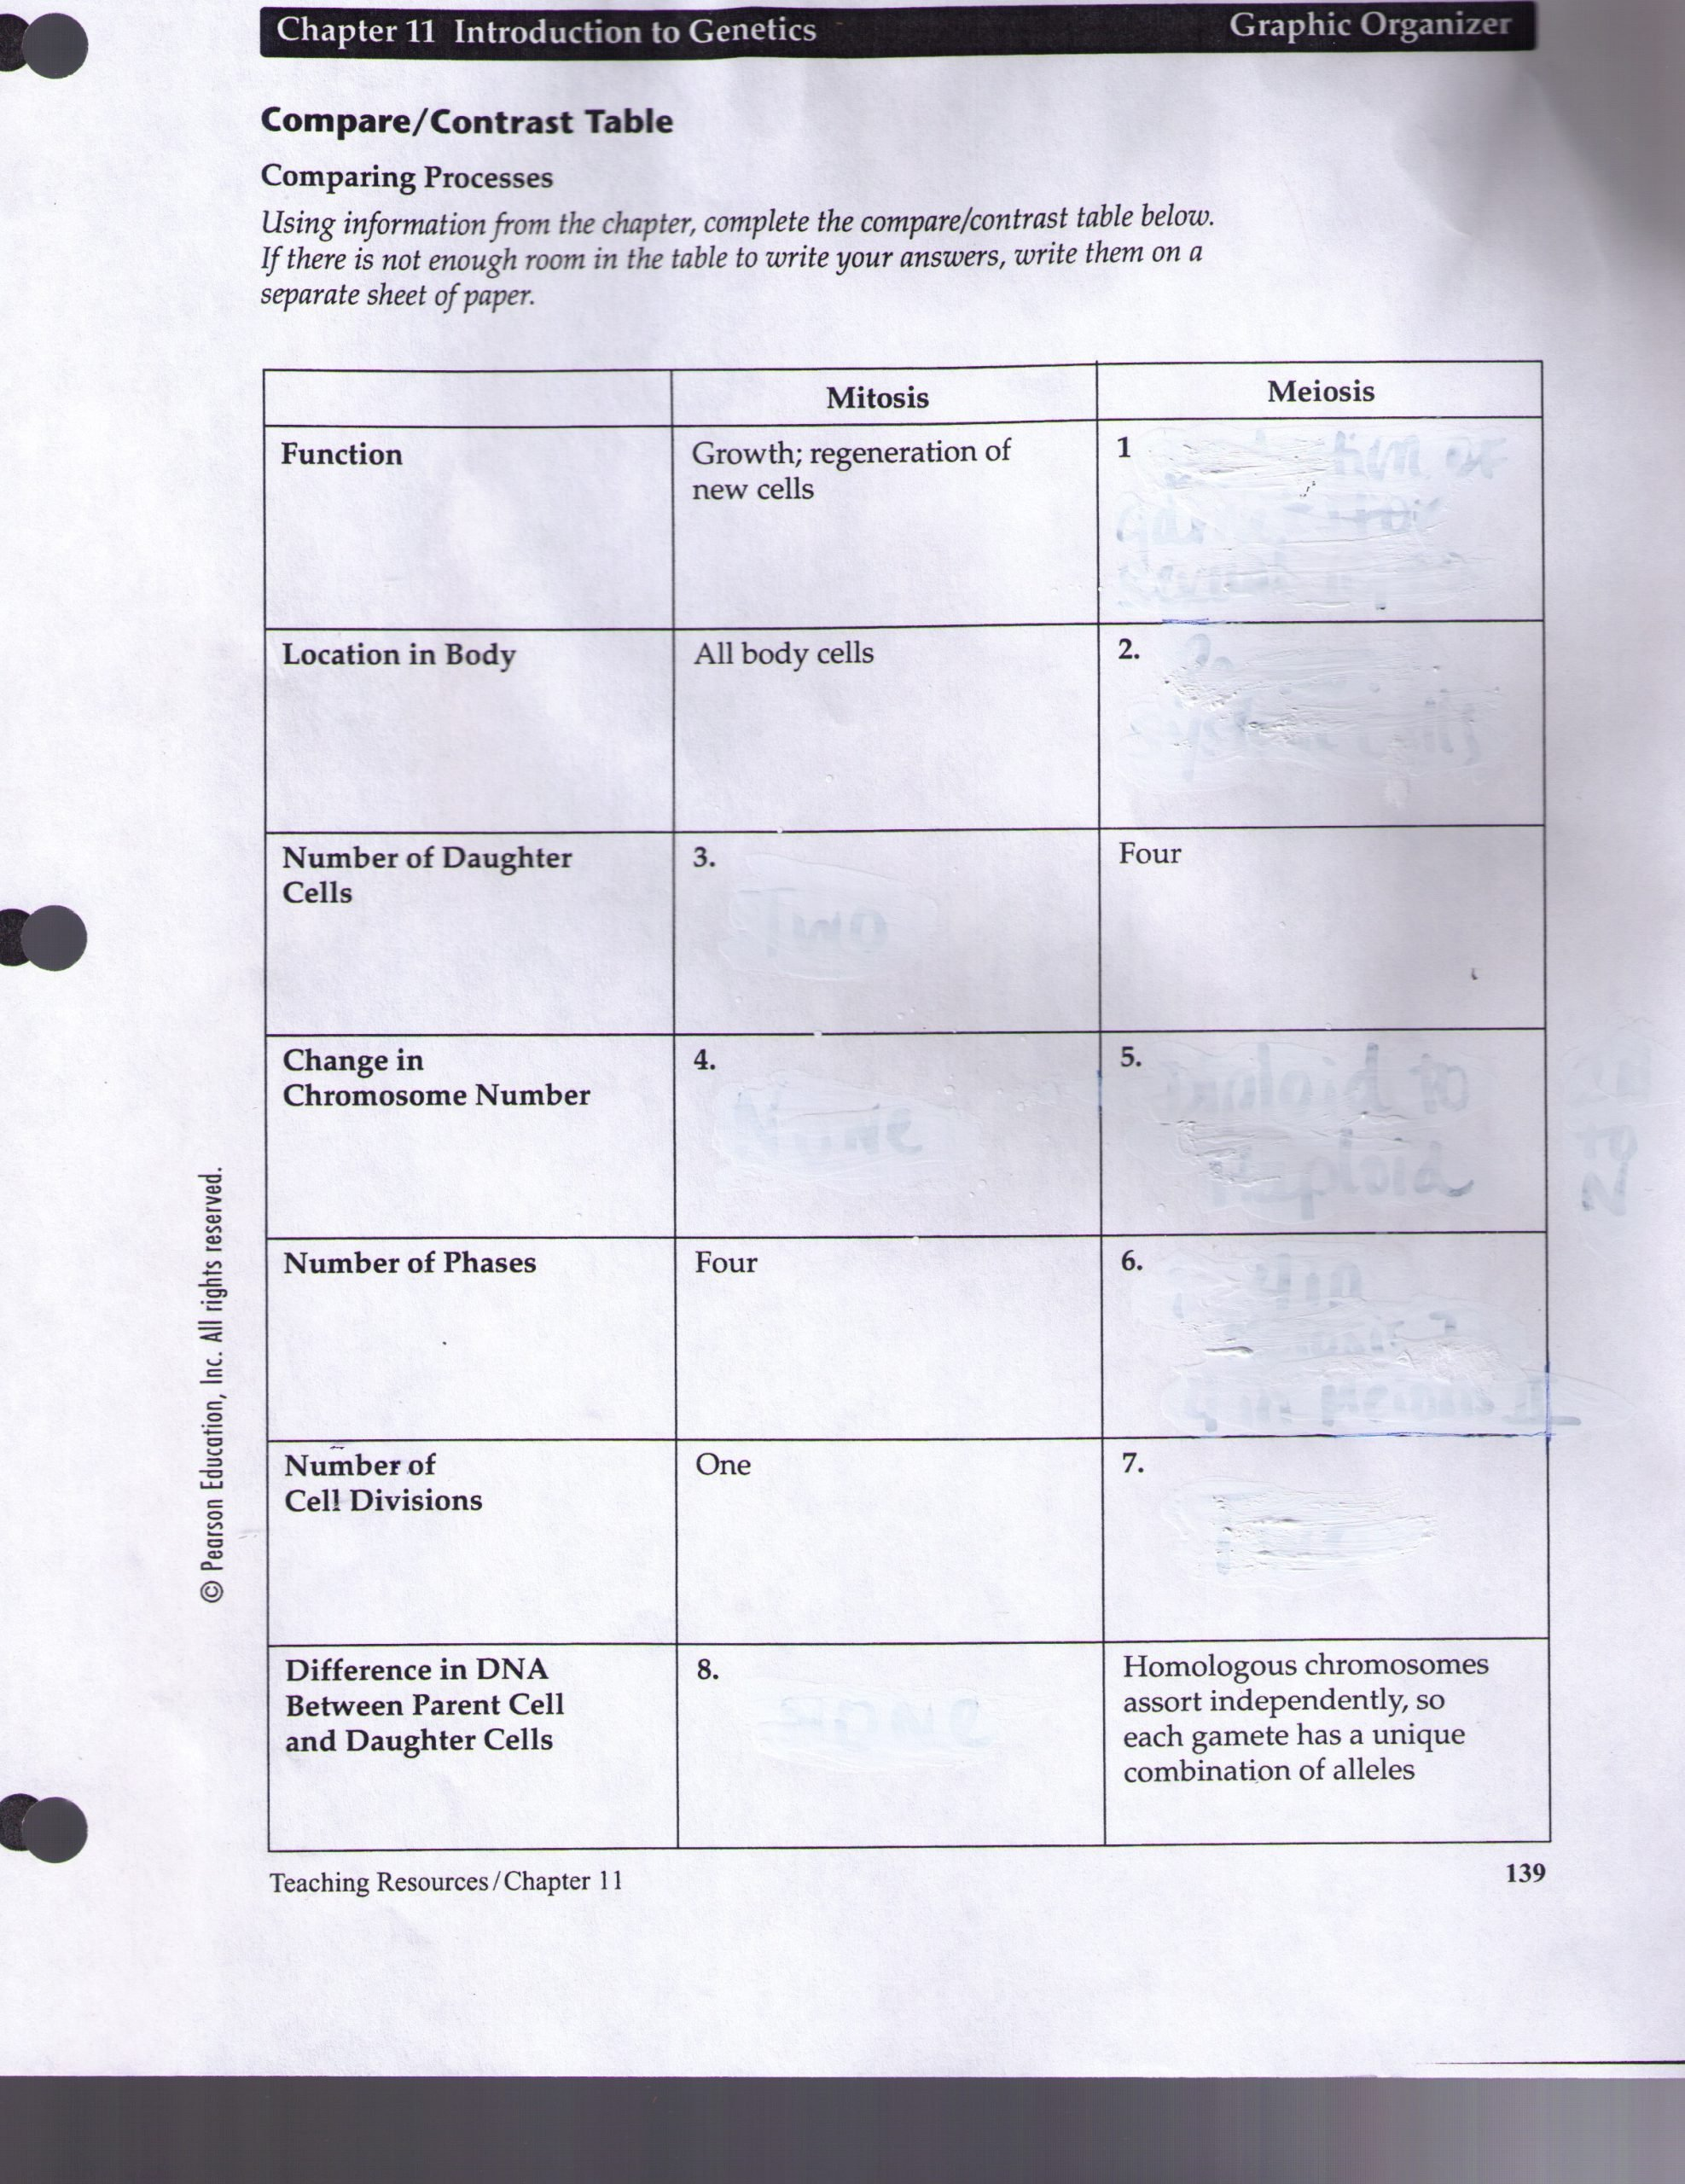 Macromolecule Comparison Table Worksheet Macromolecule Parison Table Worksheet Promotiontablecovers